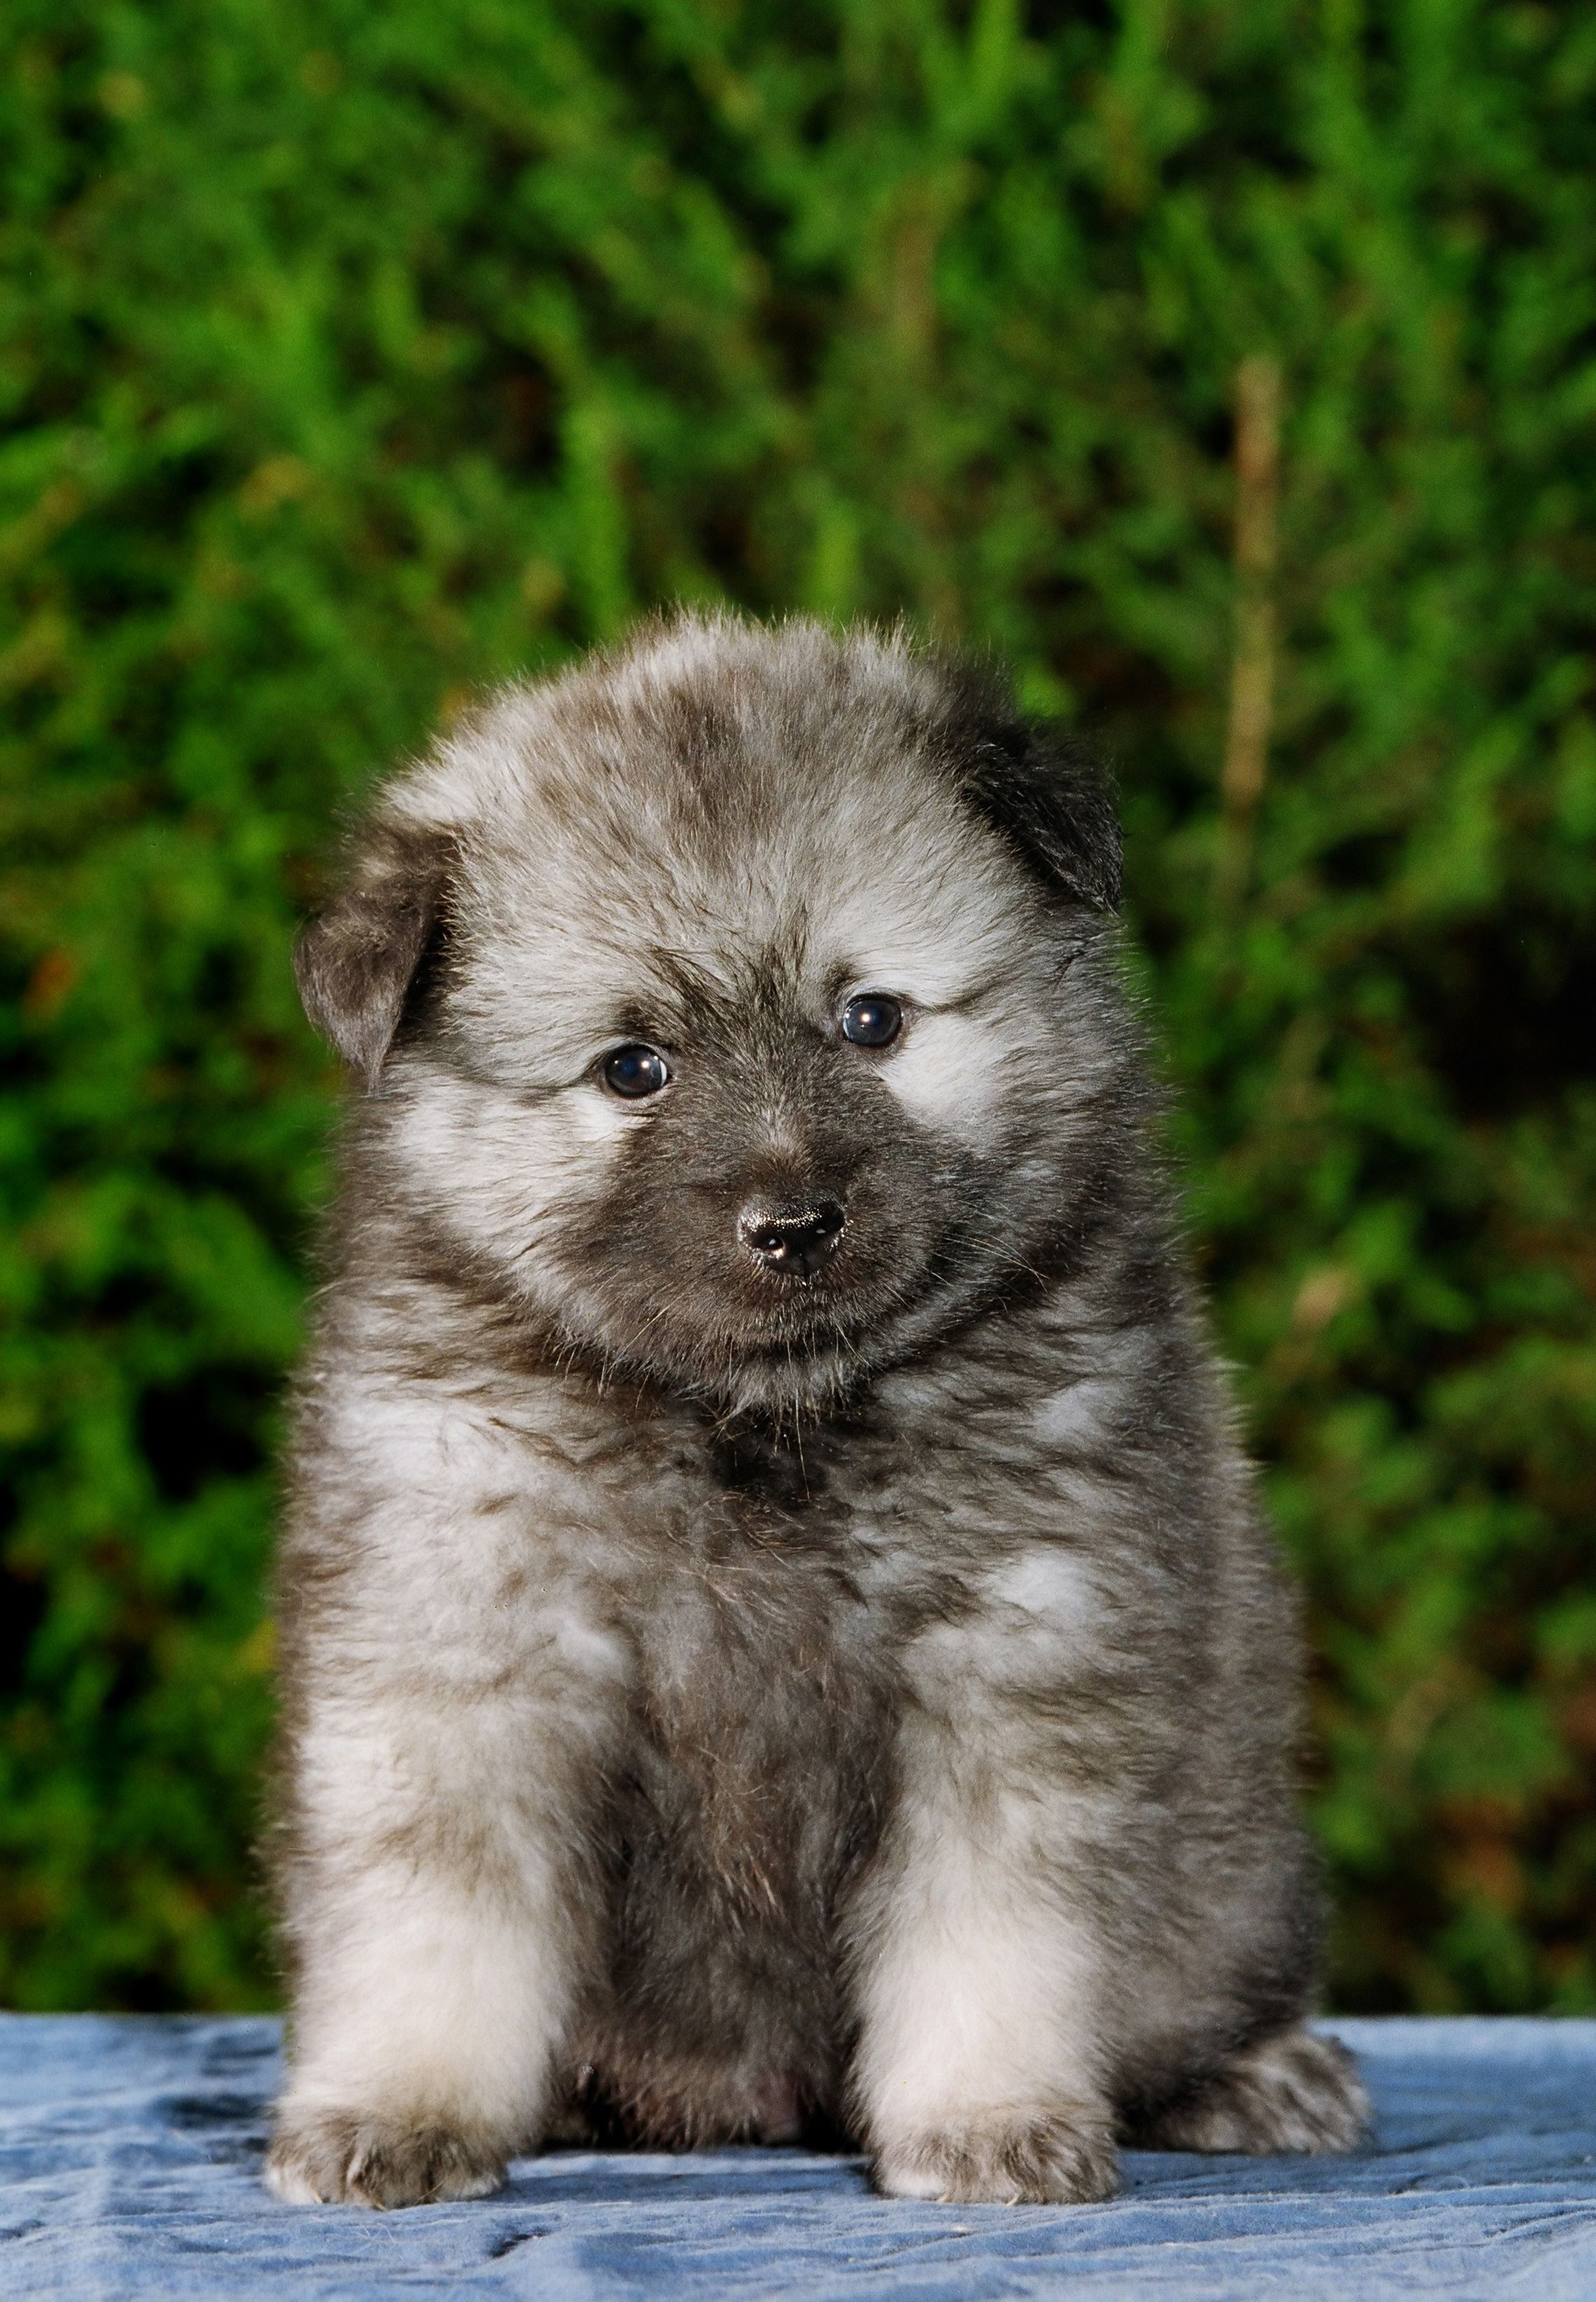 The Keeshond Is An Arctic Dog Breed Once Used As Watchdogs On